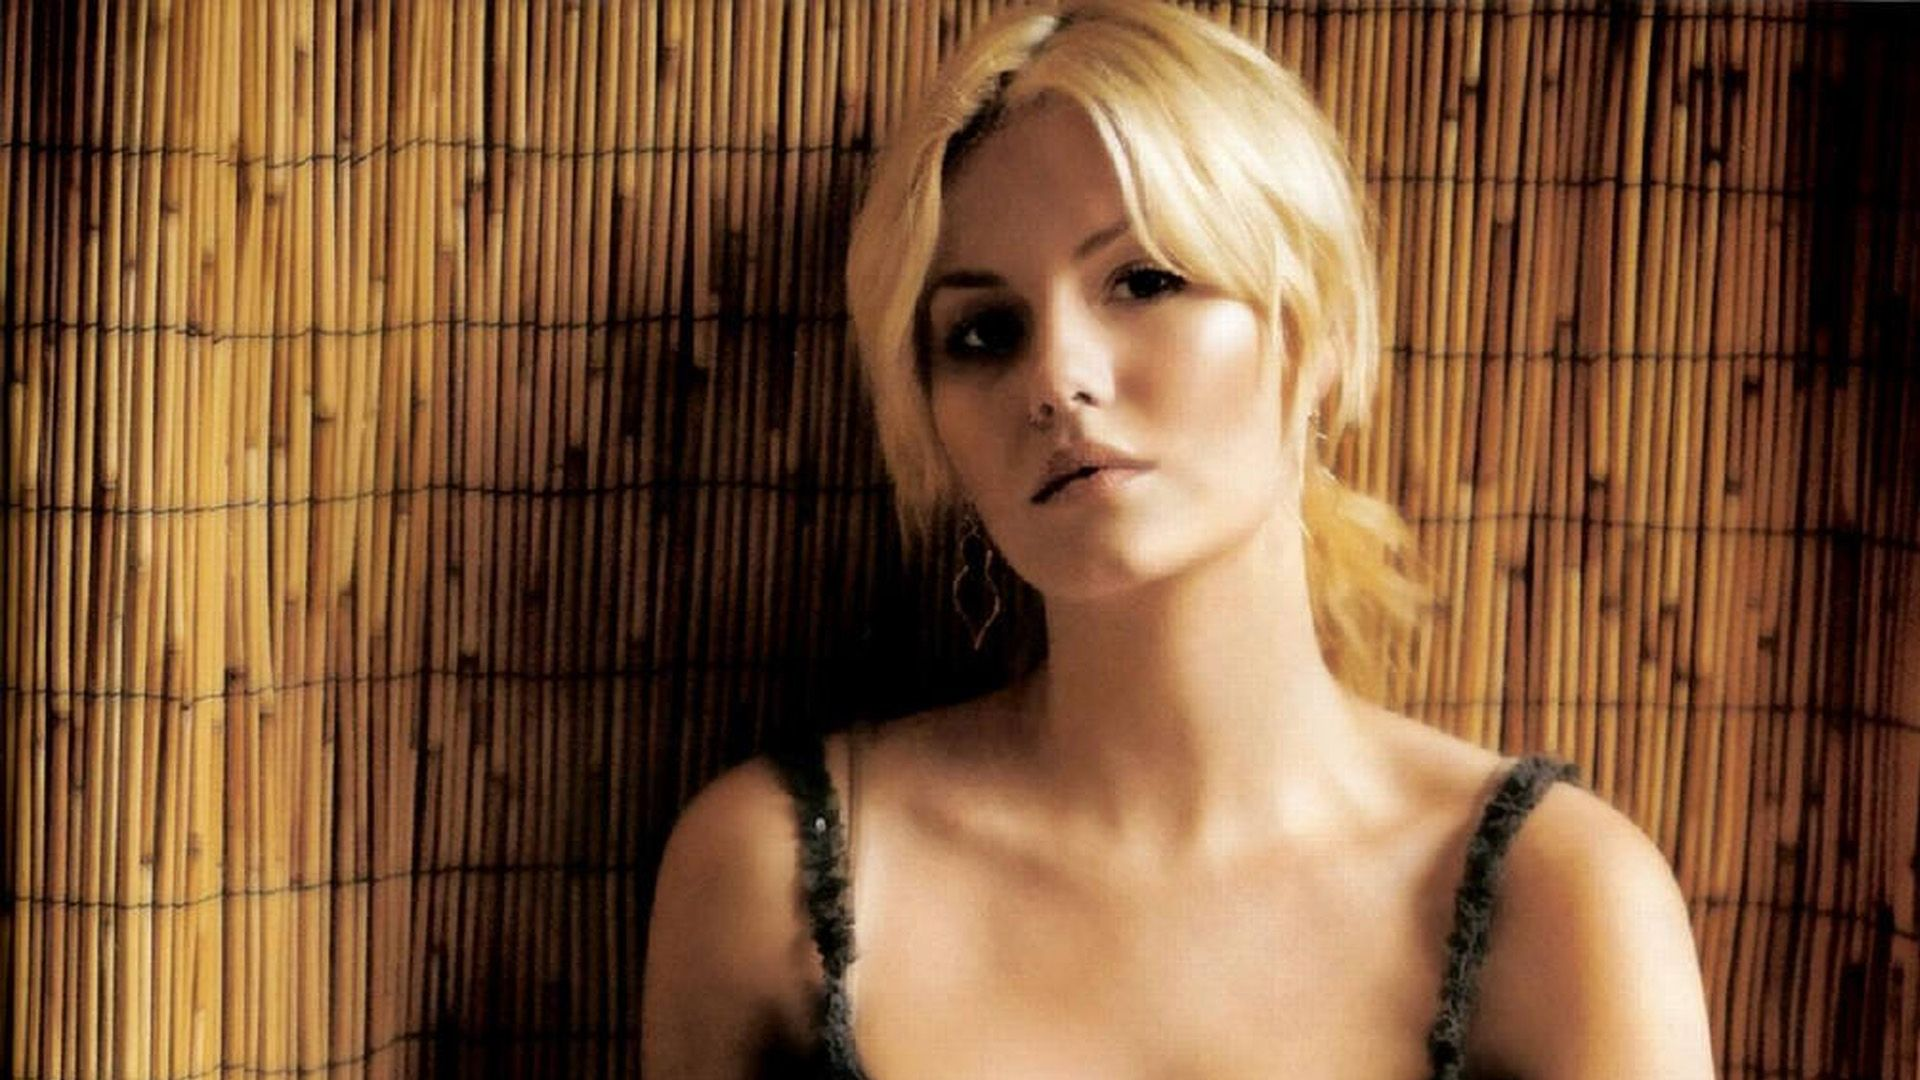 1920x1080 Elisha Cuthbert Wallpapers and Background Images - stmed.net